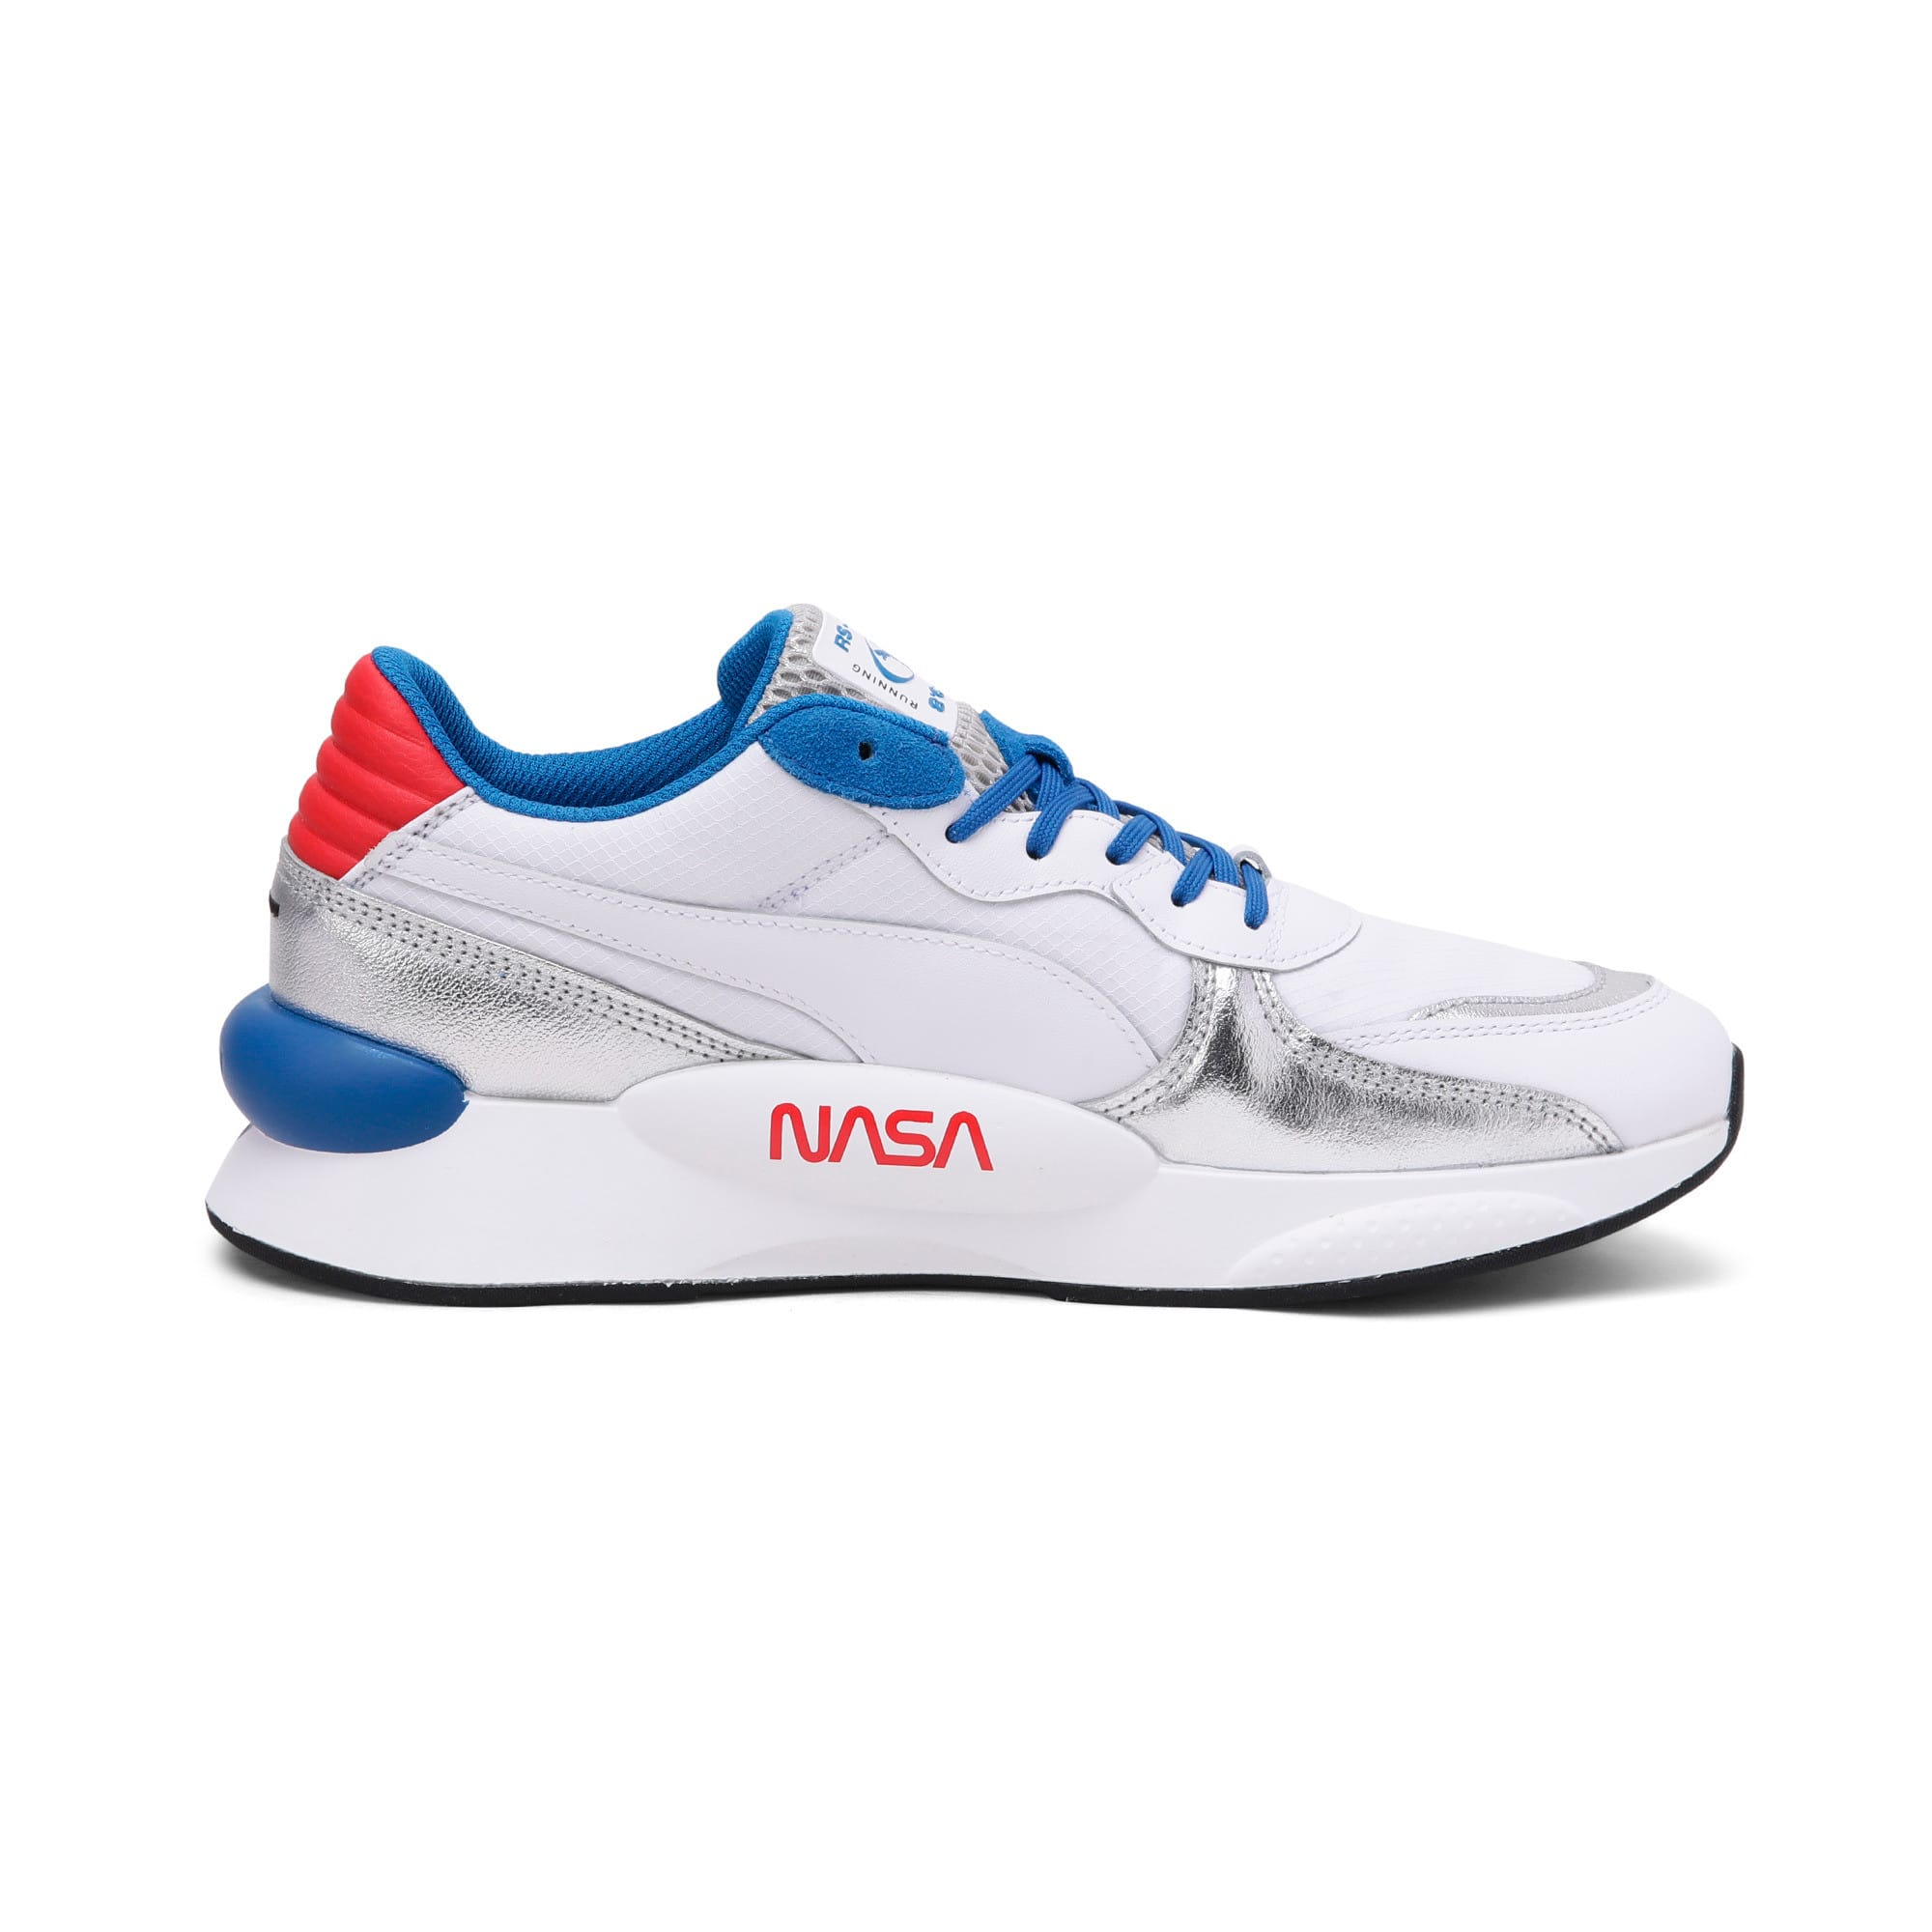 Thumbnail 5 of RS 9.8 Space Explorer Trainers, Puma White-Puma Silver, medium-IND